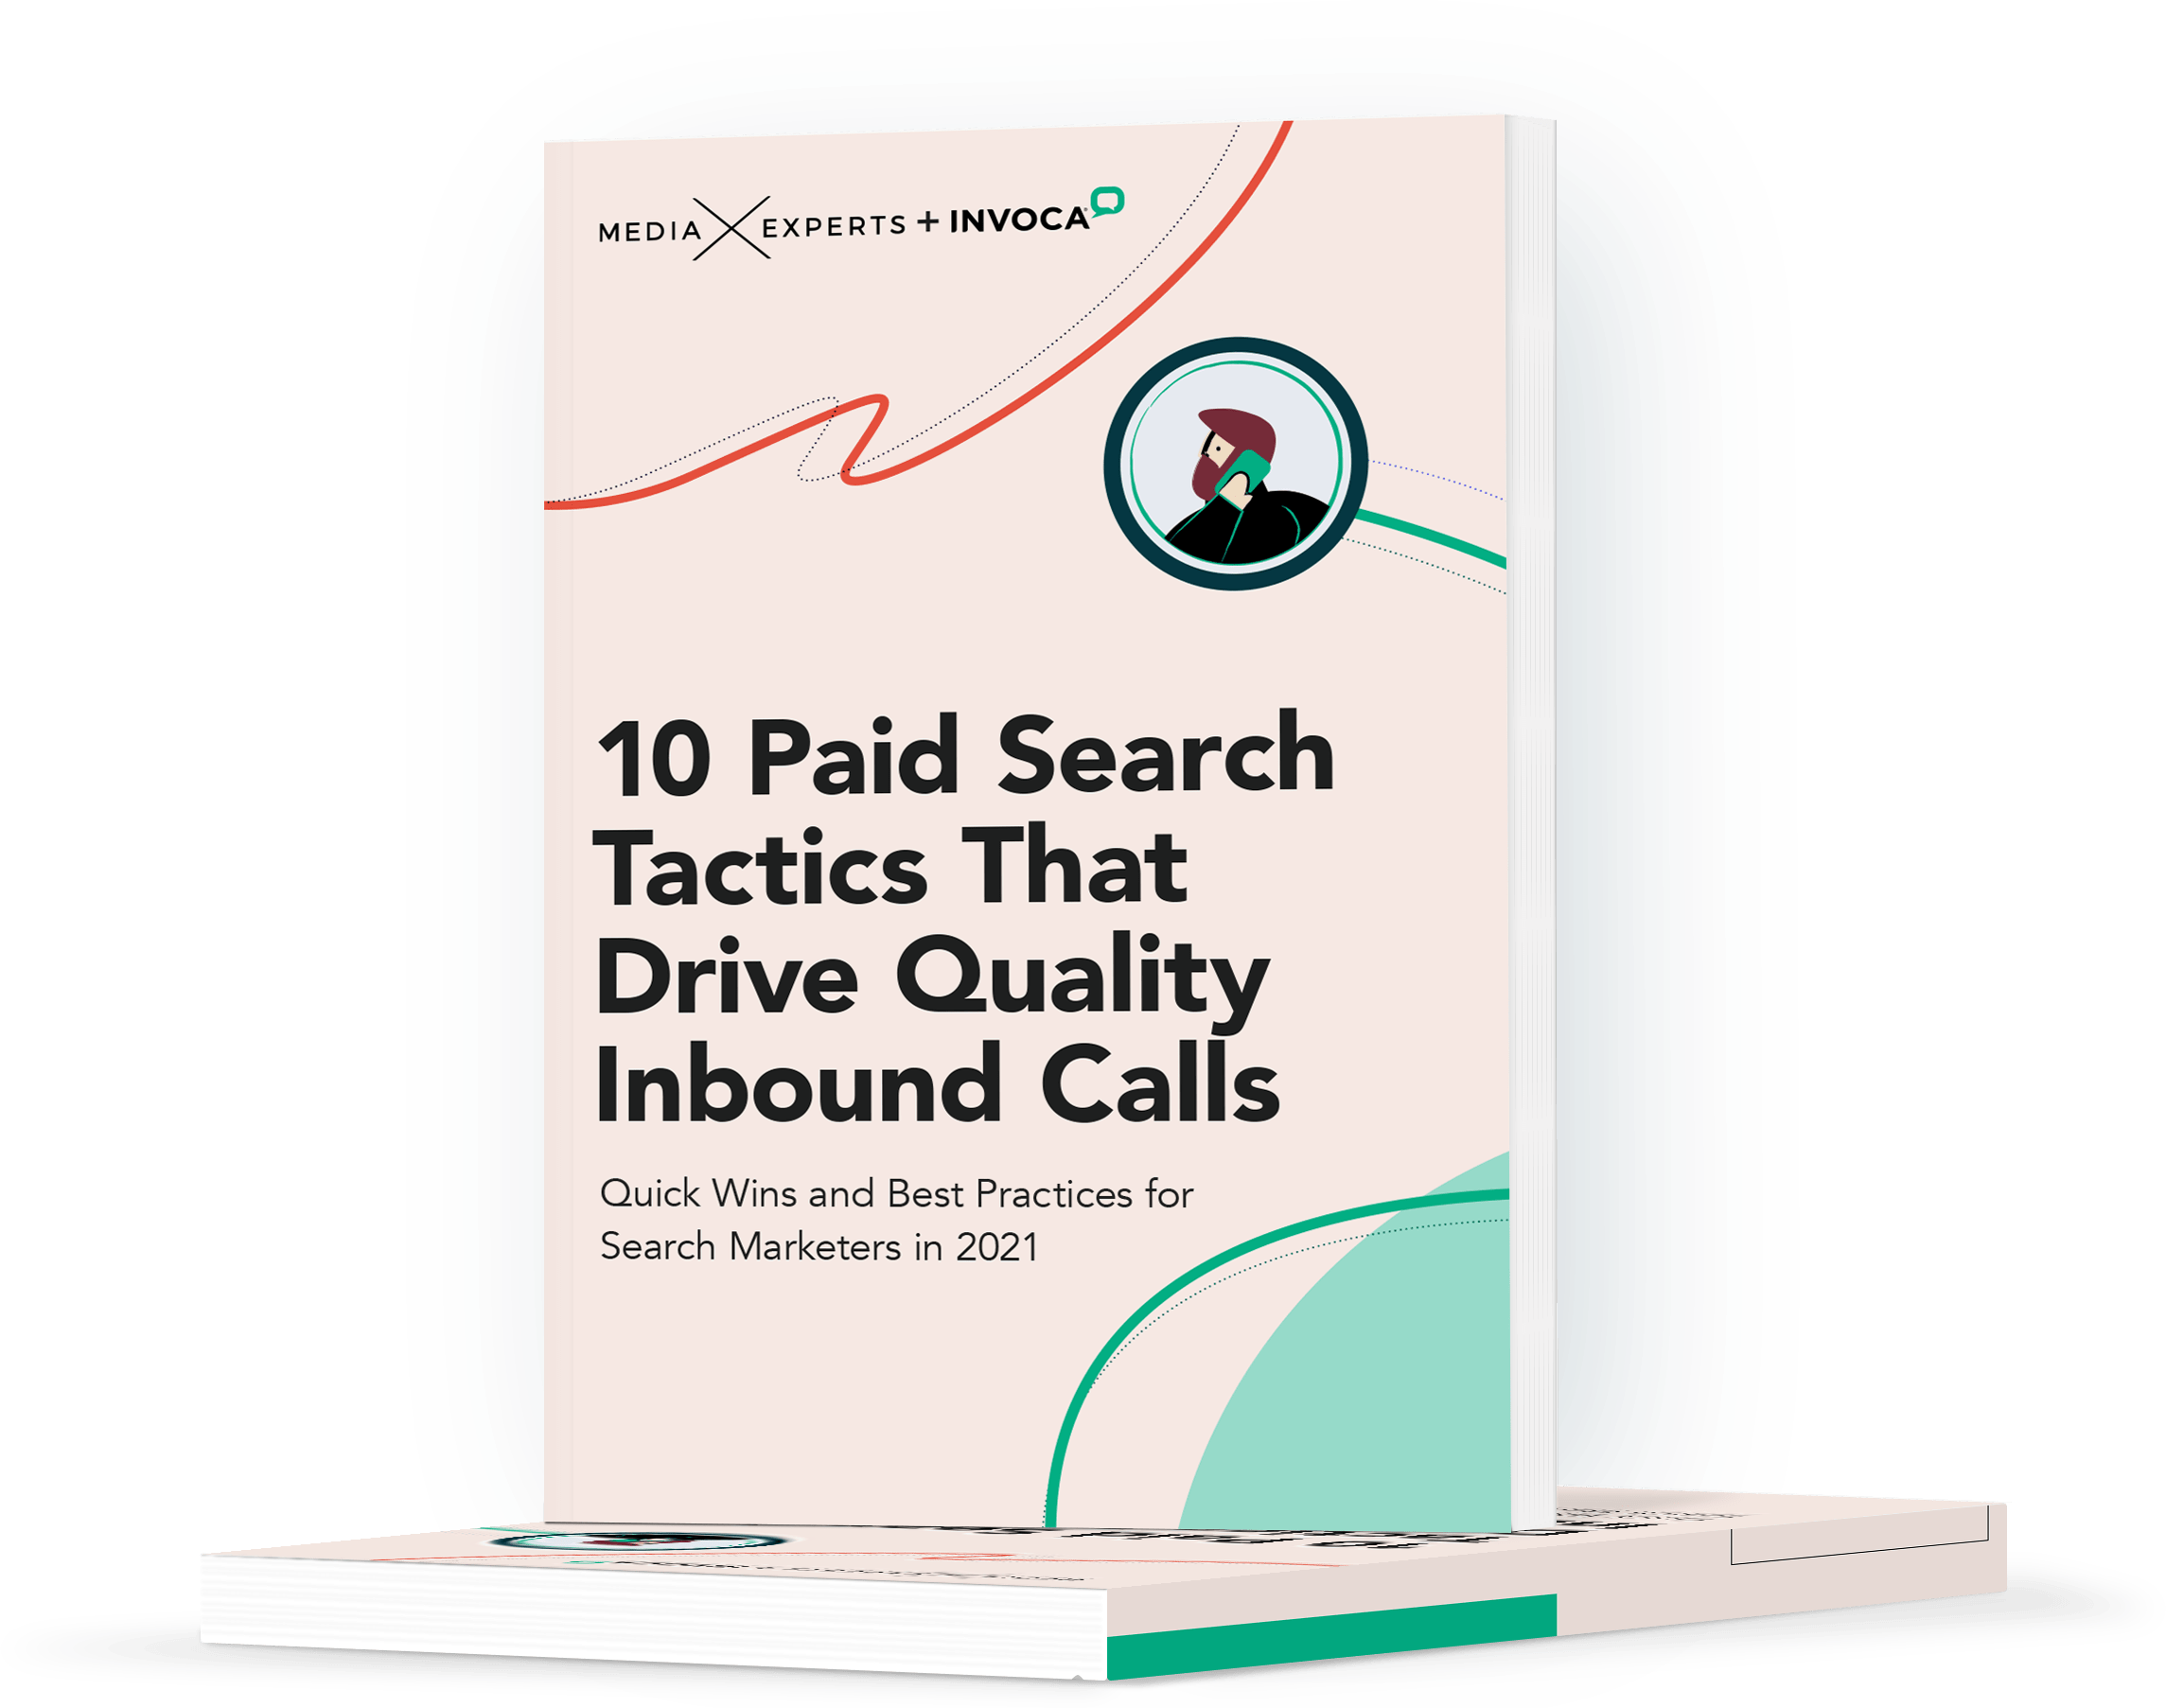 10 Paid Search Tactics That Drive Quality Inbound Calls